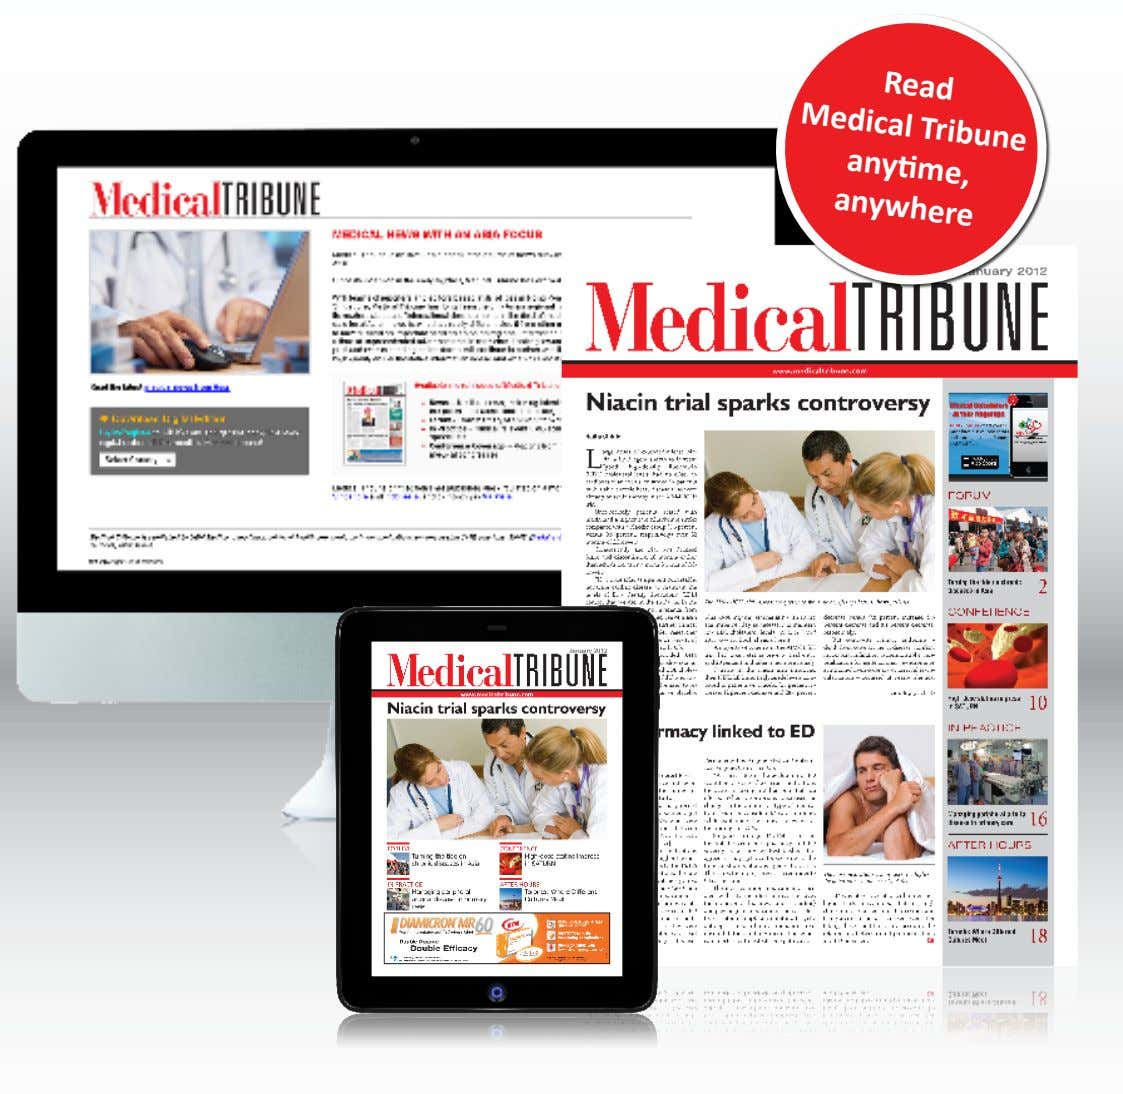 Read Medical Tribune anytime, anywhere